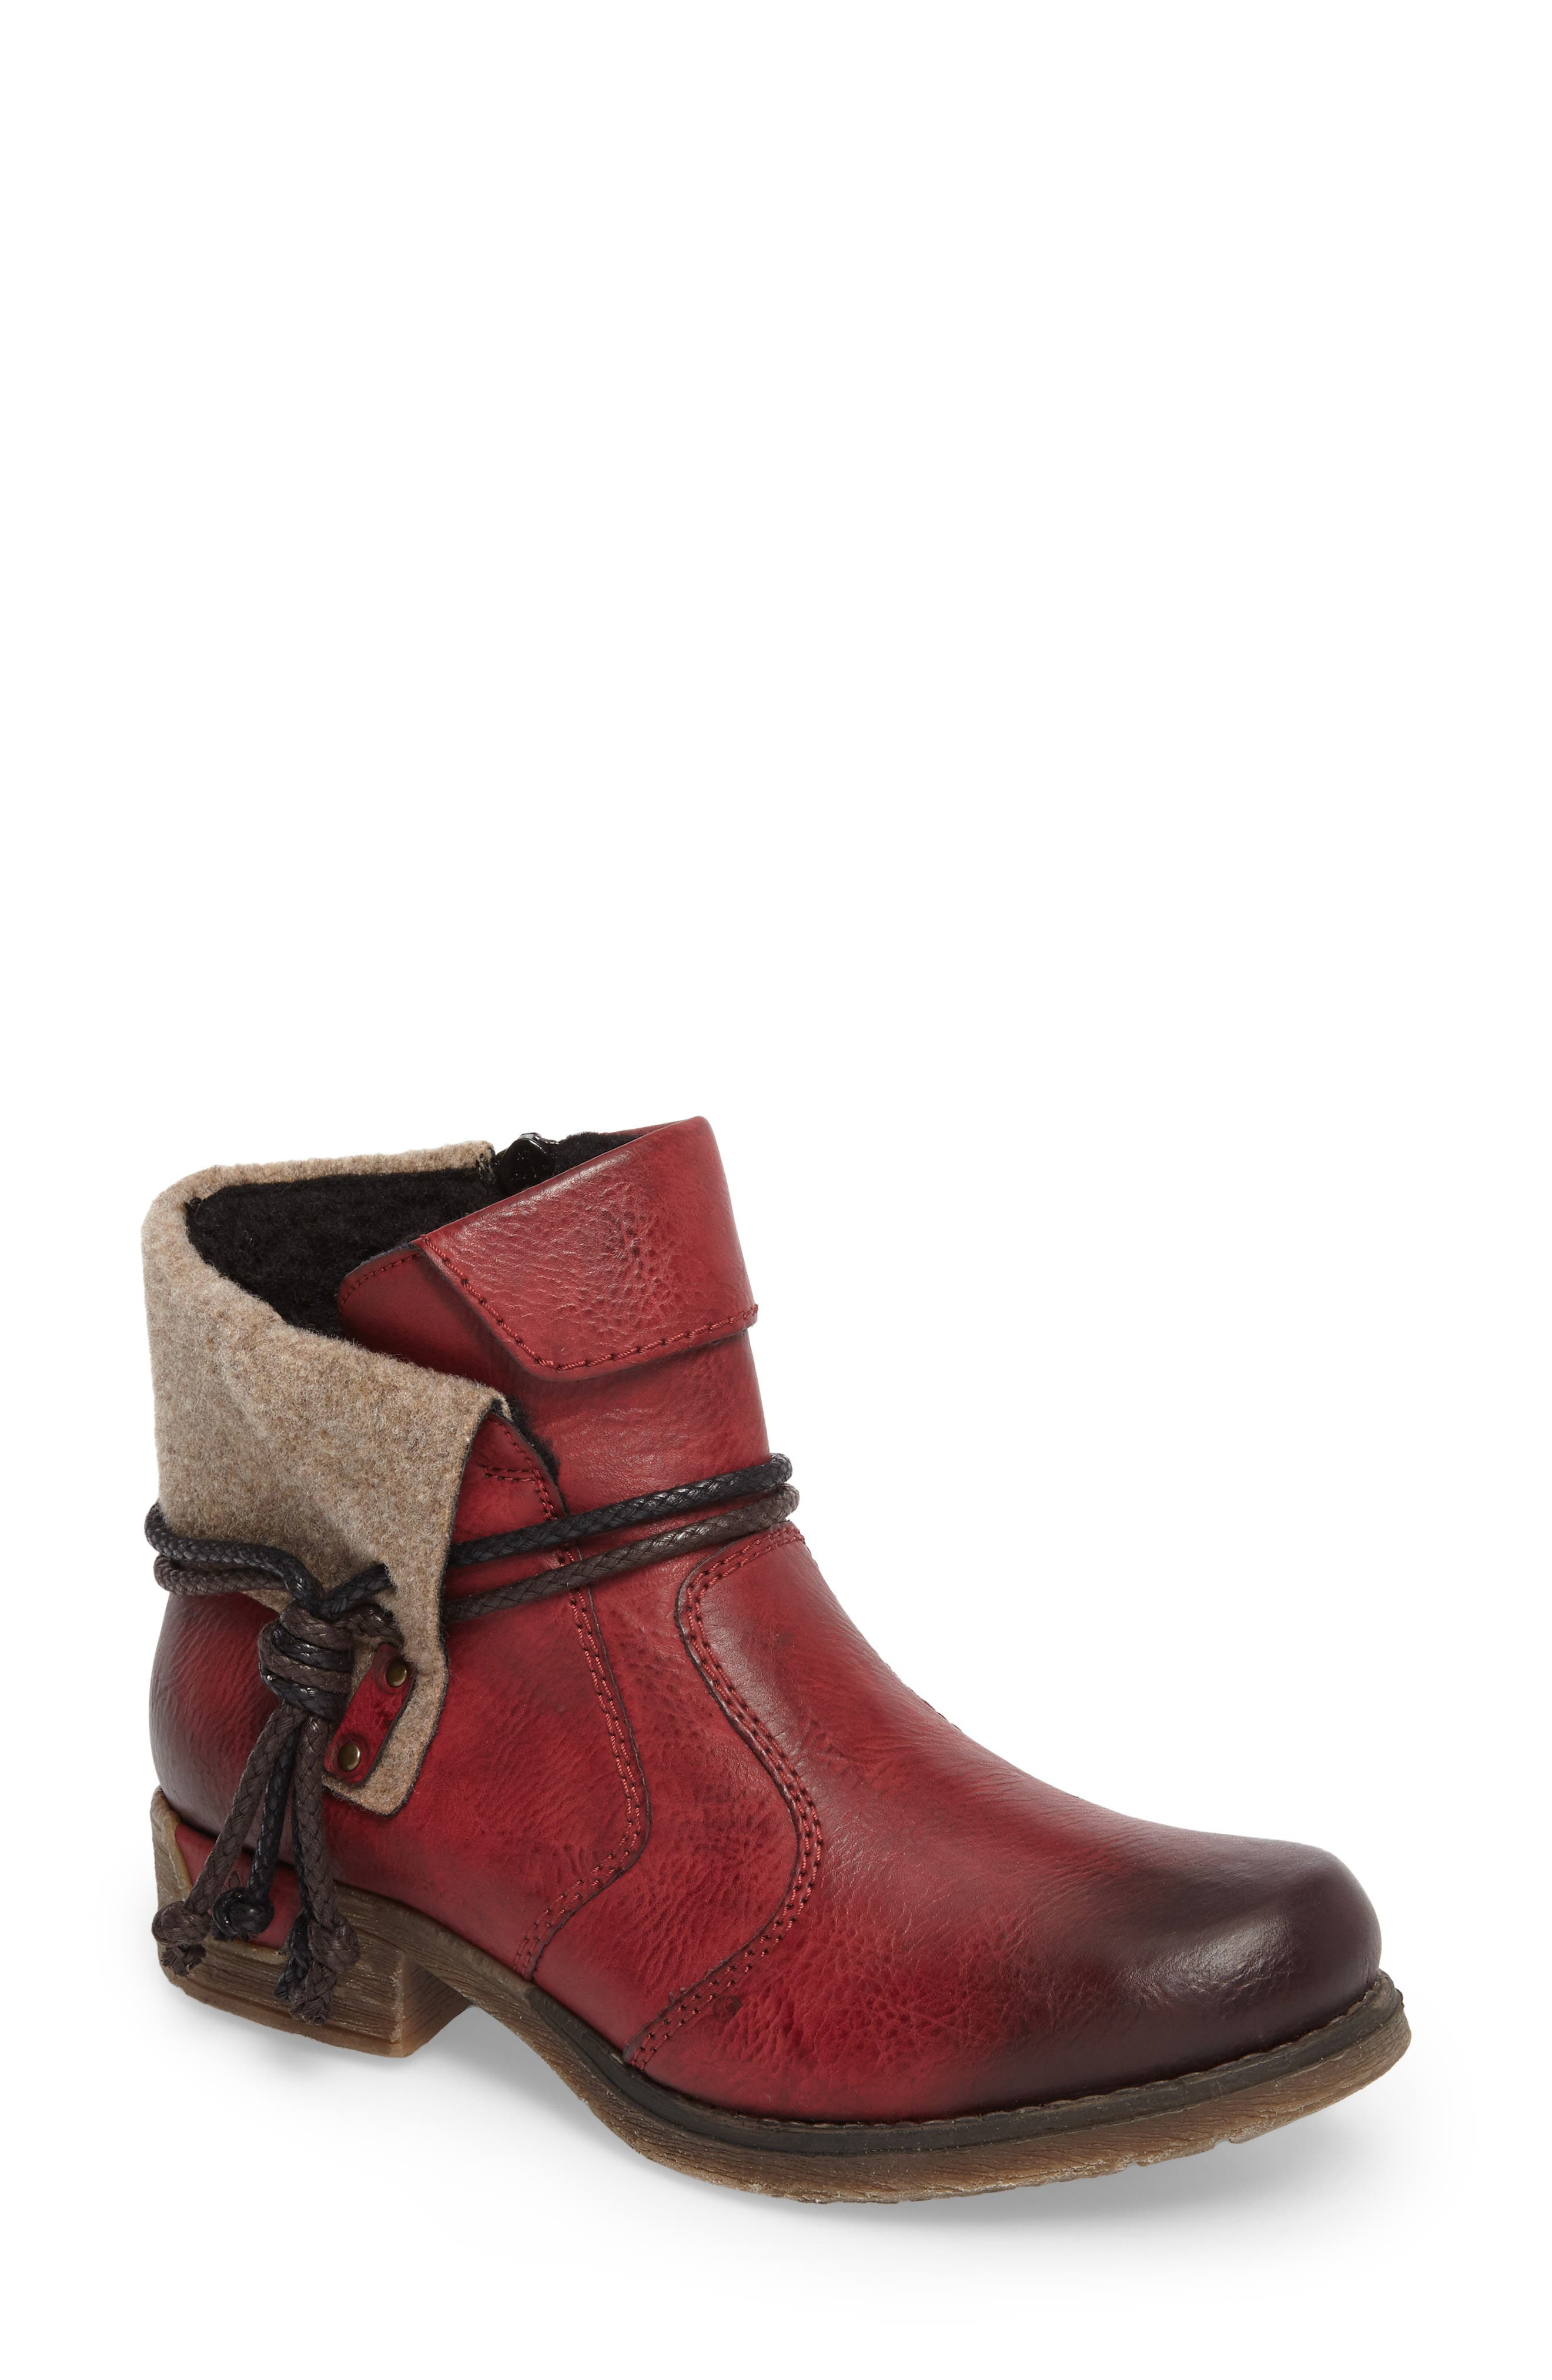 'Fee 93' Cuffed Shaft Bootie,                             Main thumbnail 1, color,                             Wine Faux Leather